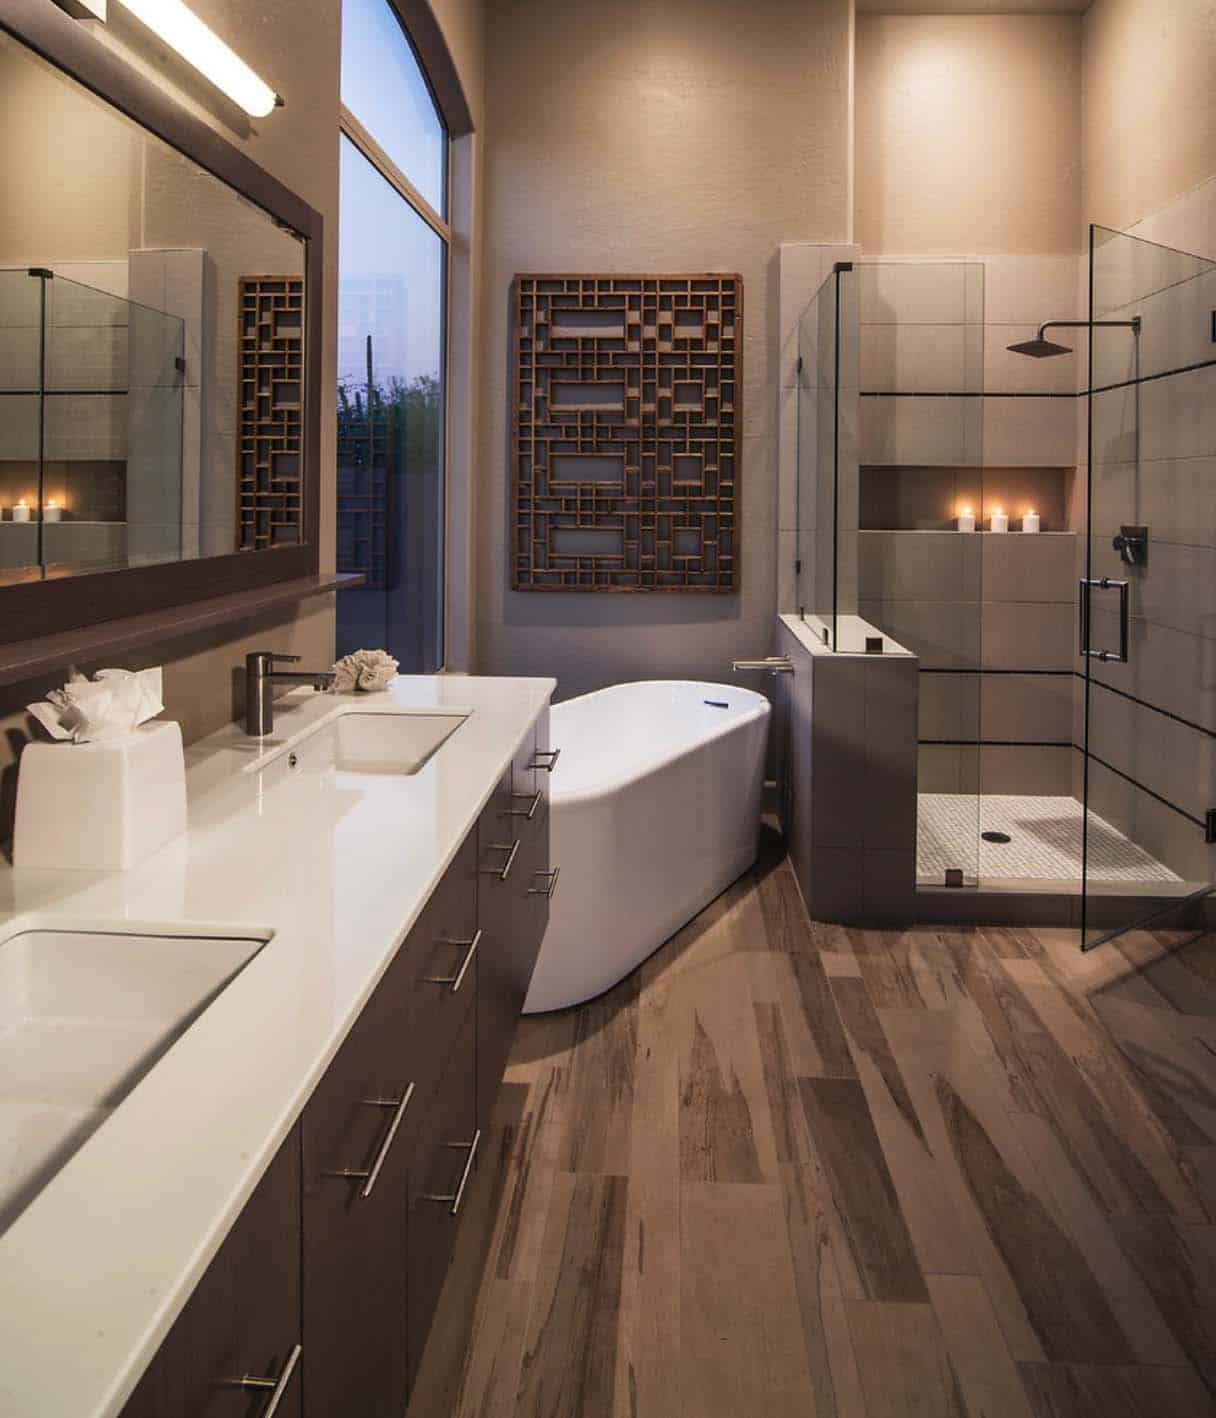 Freestanding-Tubs-Bathroom-Ideas-24-1 Kindesign